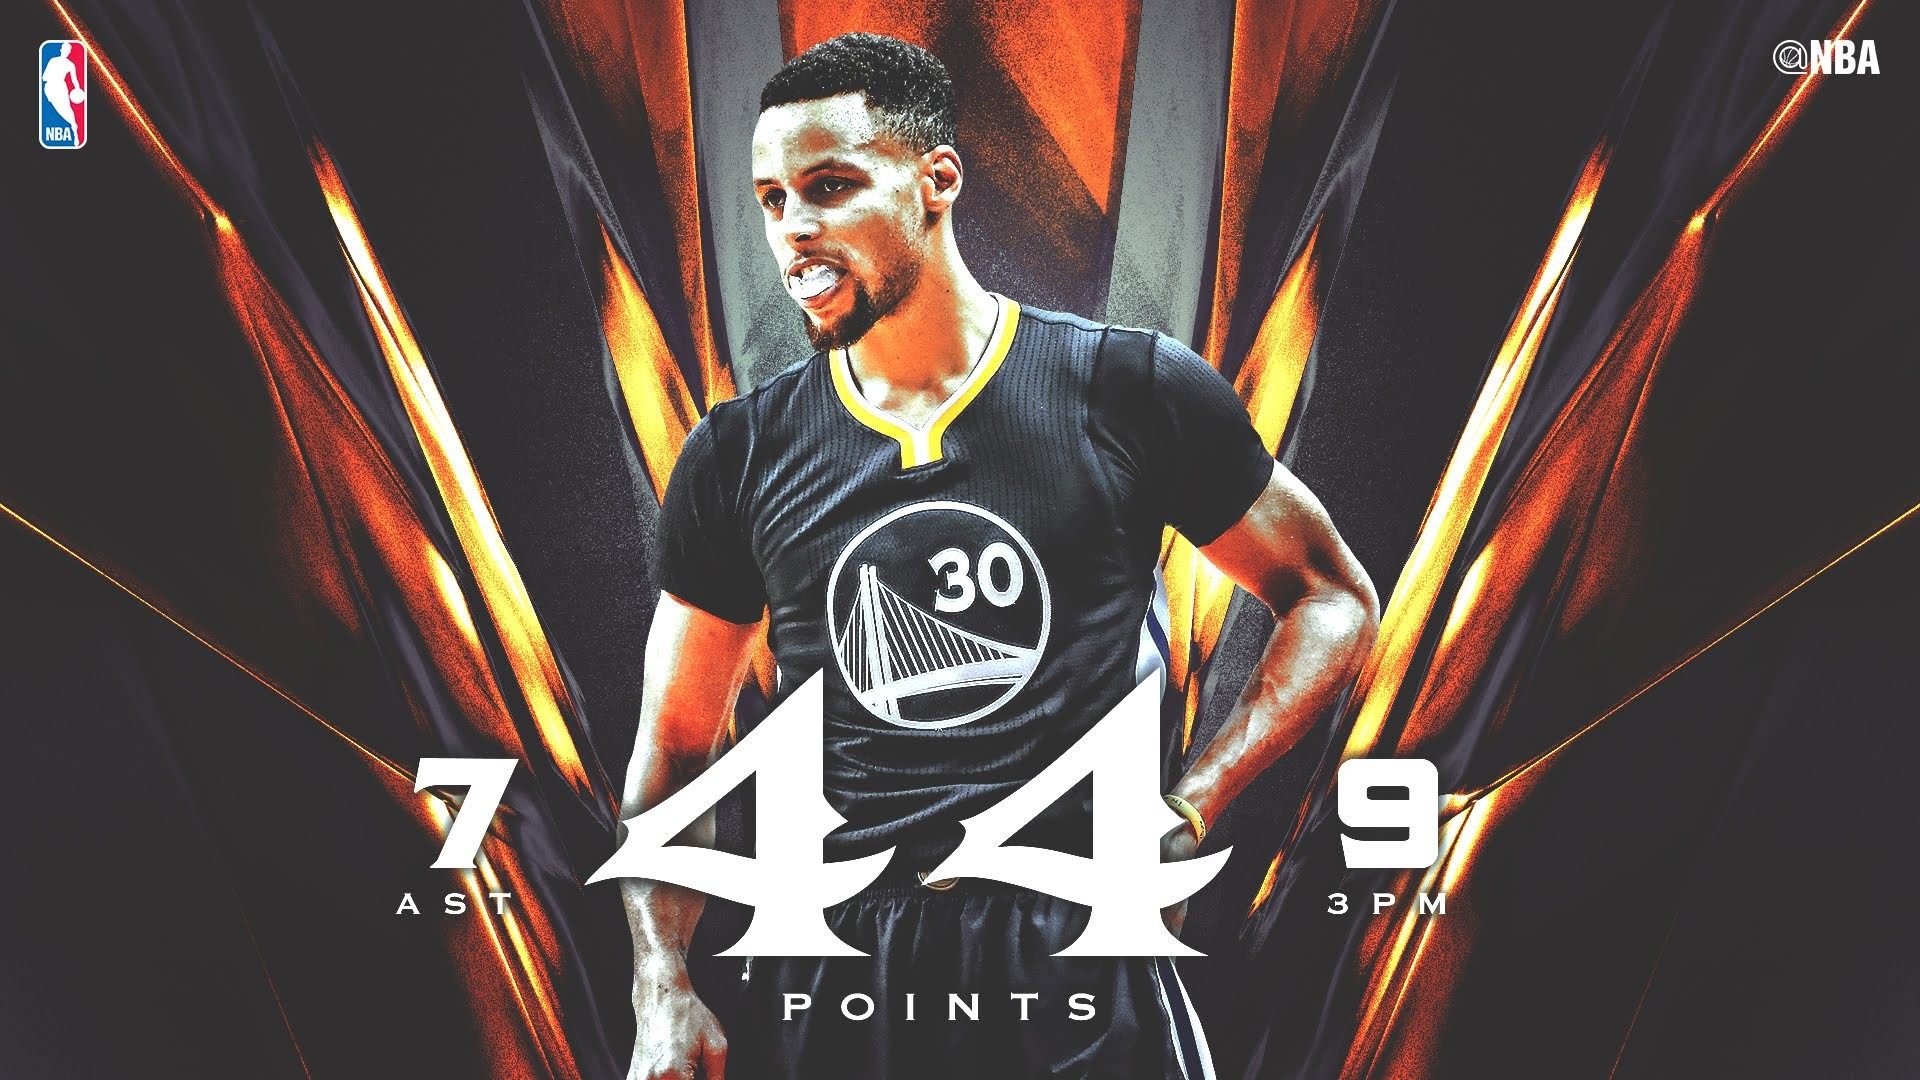 Stephen Curry Wallpapers | Basketball Wallpapers at .